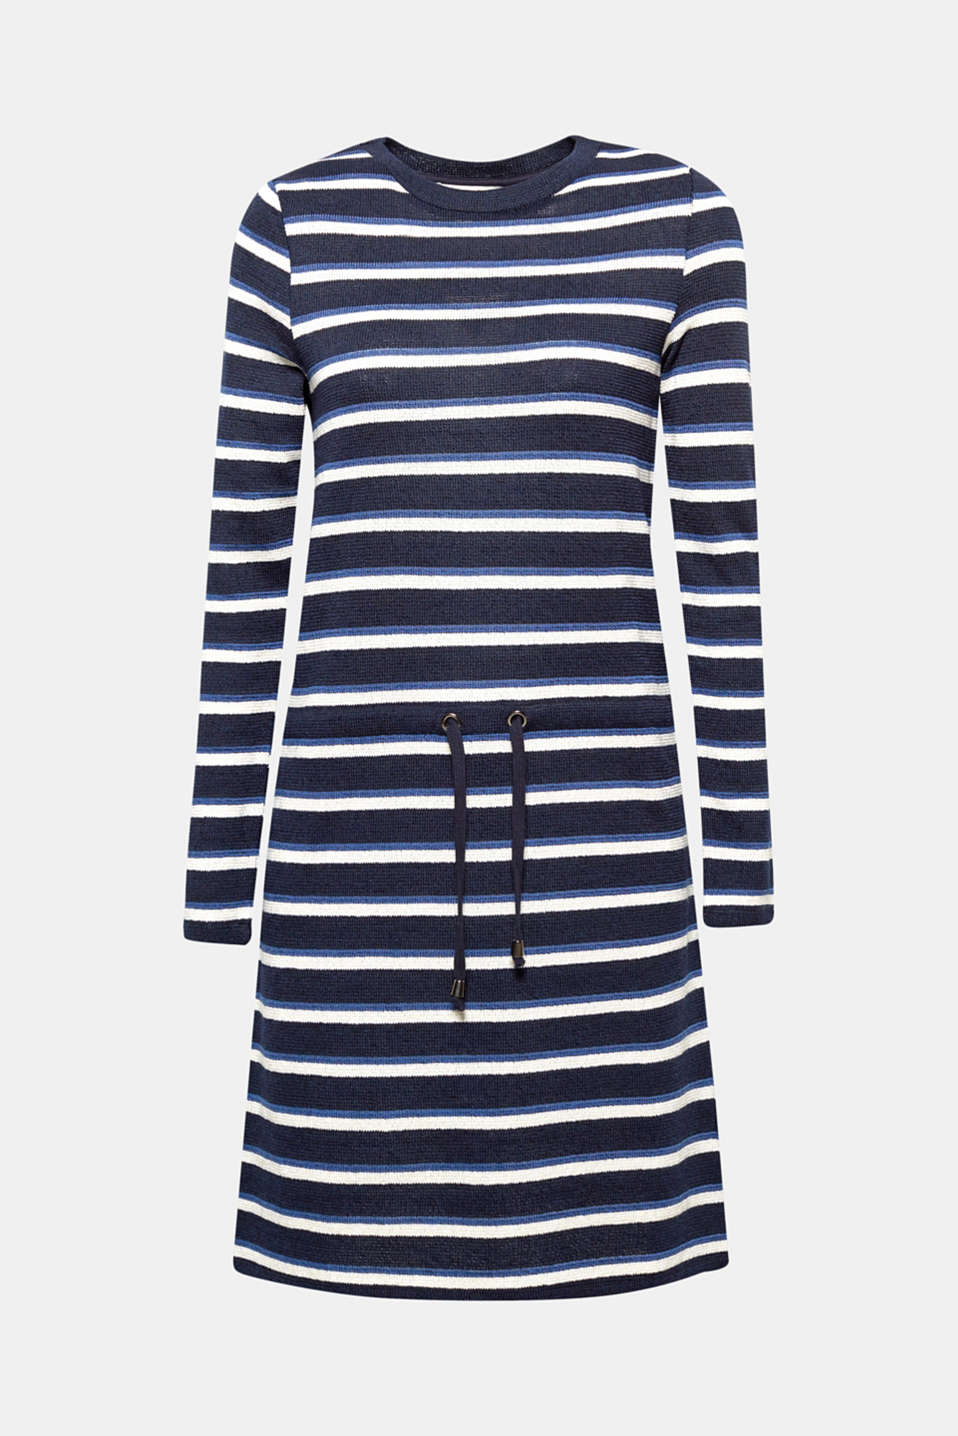 Your new, sporty knitted dress is on the way: fashionable, striped and with a drawstring panel at waist height!